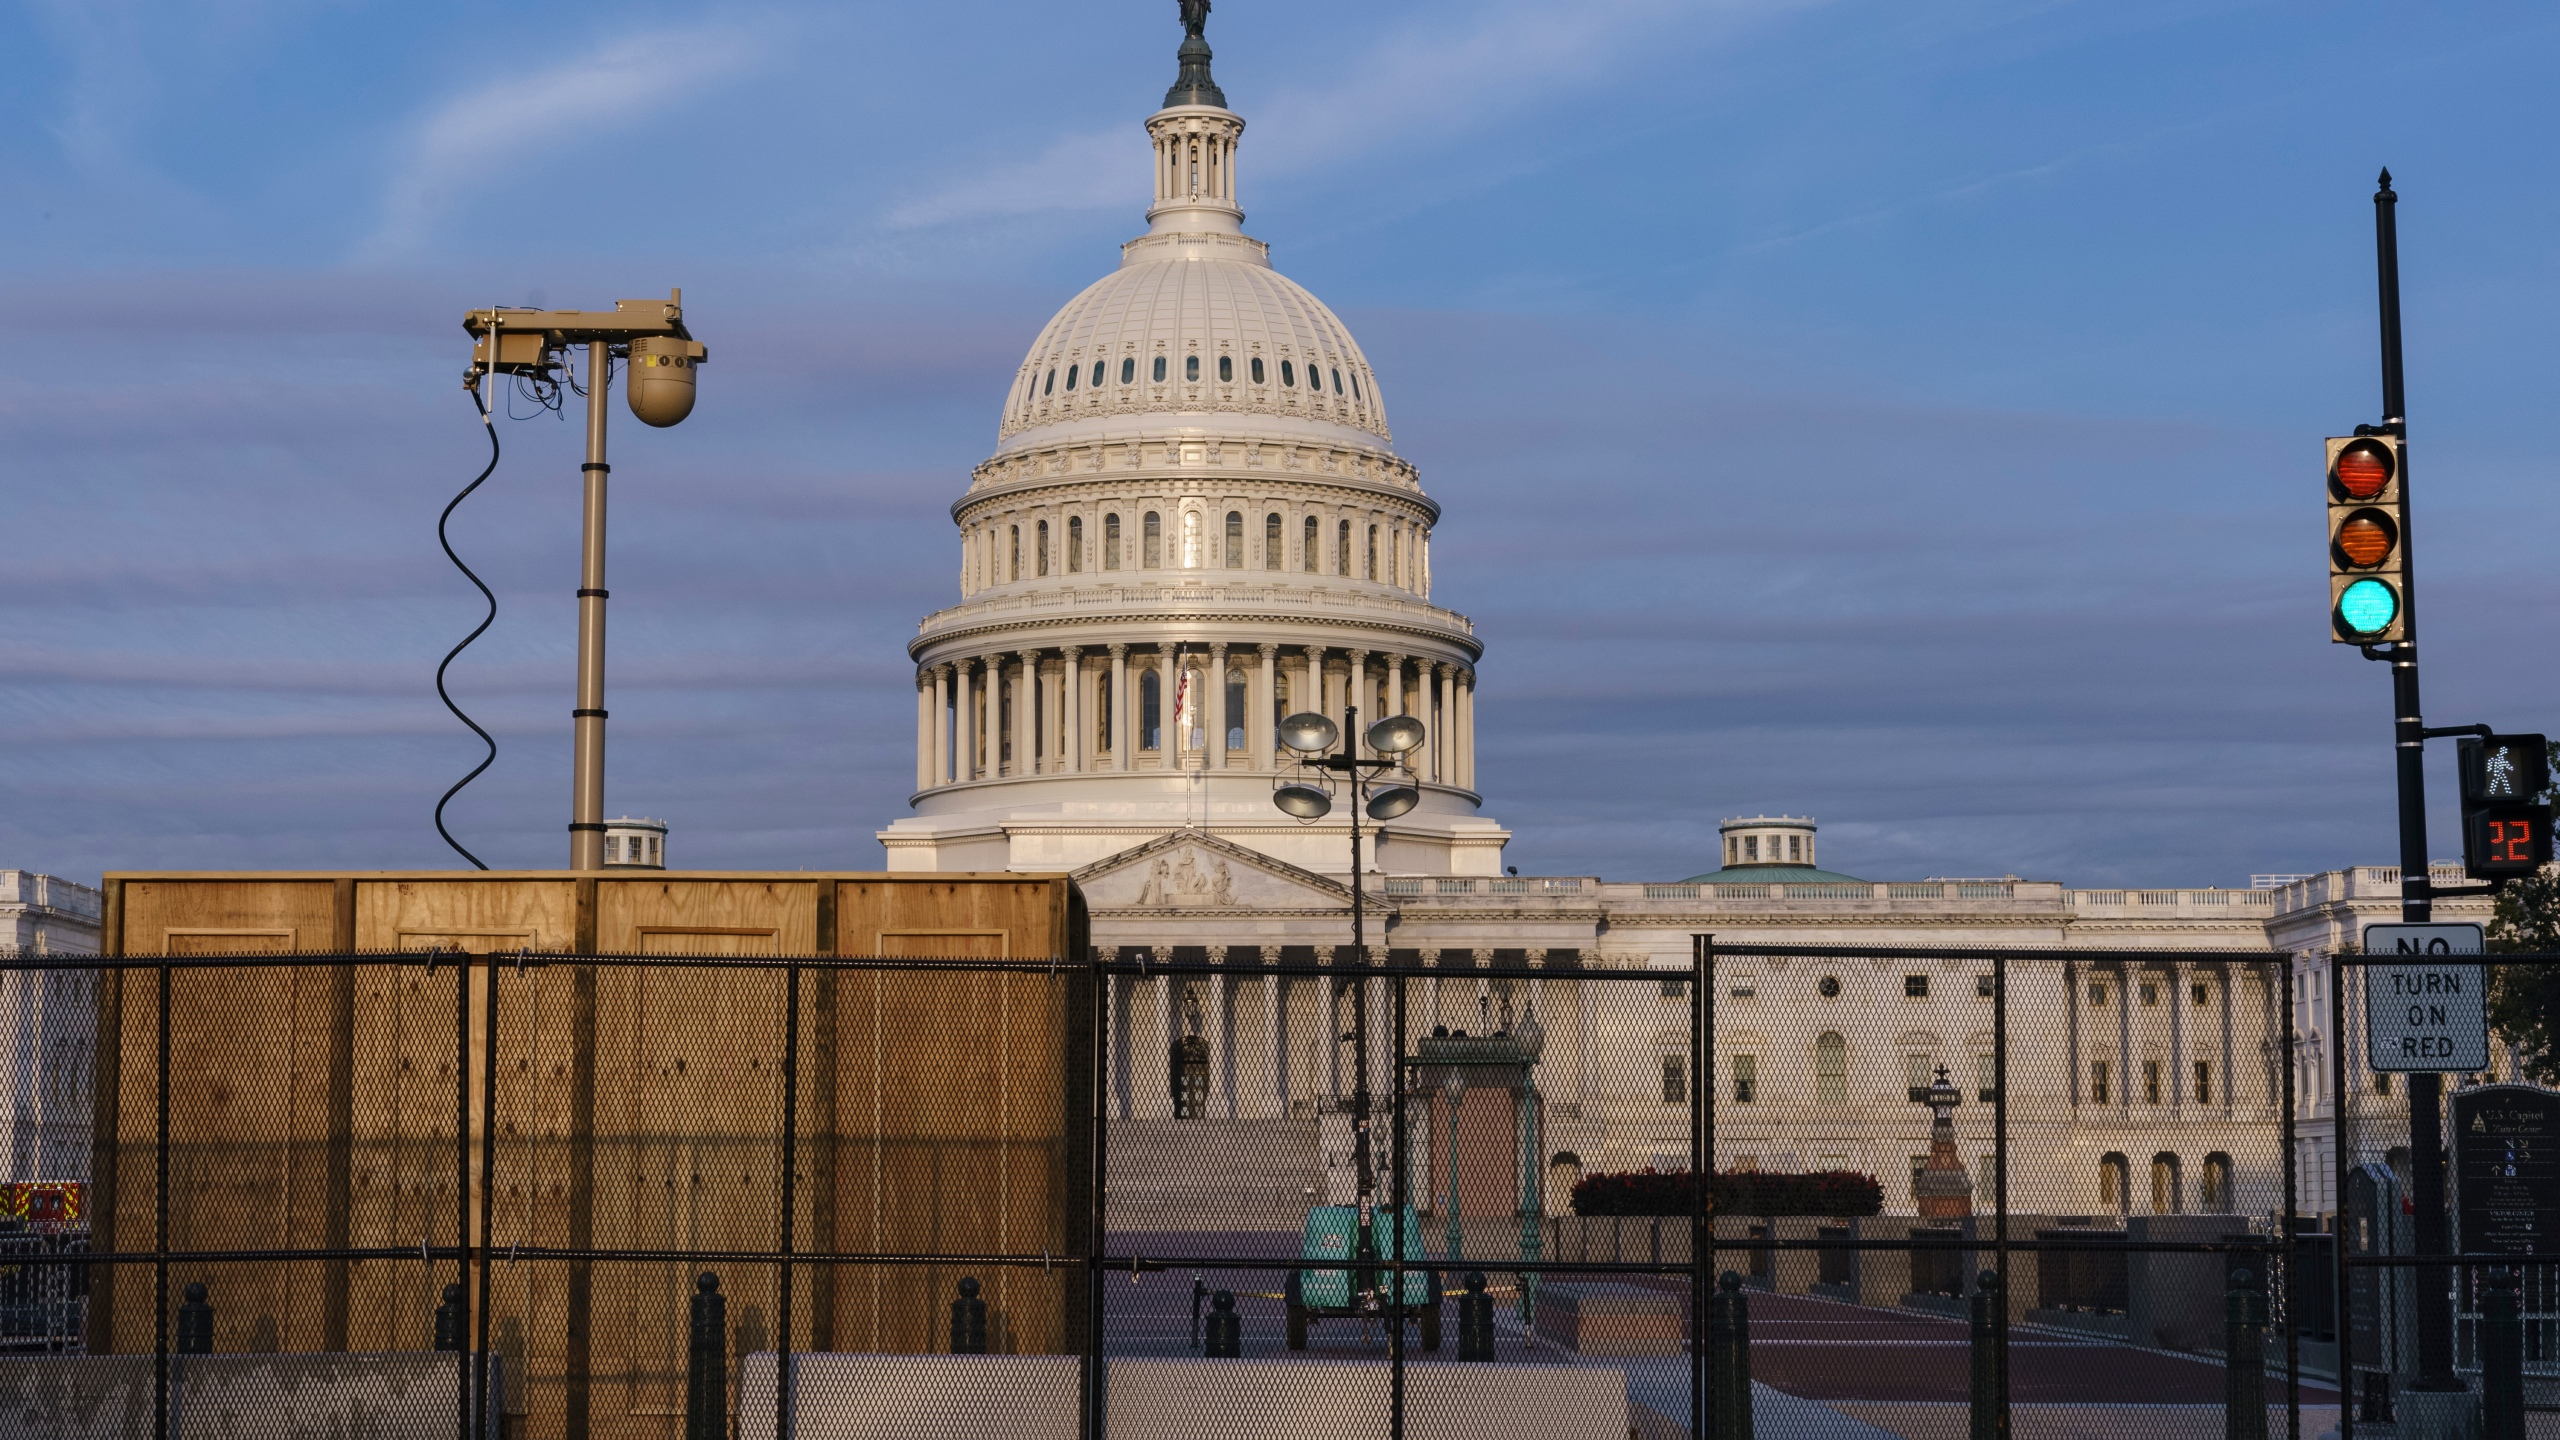 Security fencing and video surveillance equipment has been installed around the Capitol in Washington, on Sept. 16, 2021, ahead of a planned Sept. 18 rally by far-right supporters of former President Donald Trump. (AP Photo/J. Scott Applewhite)